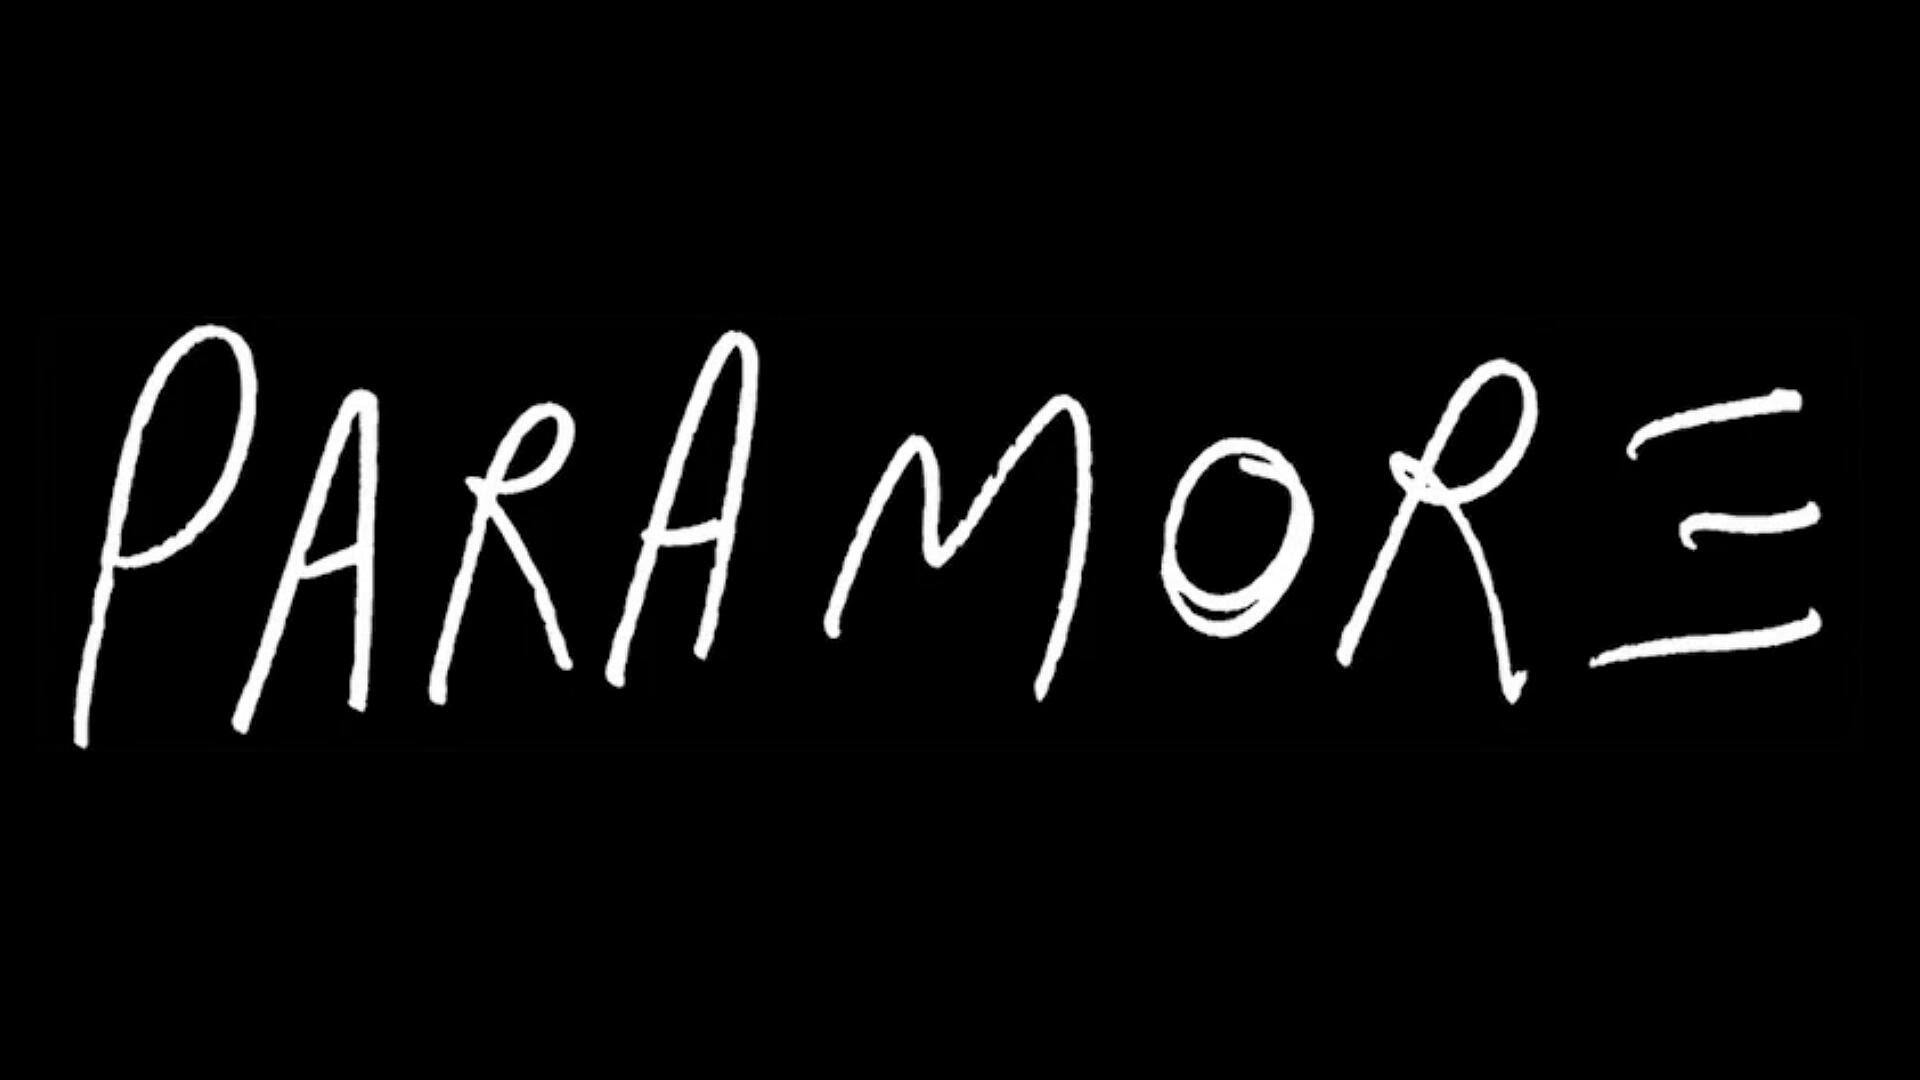 The Cars Band Cover Wallpaper Paramore Hd Wallpapers